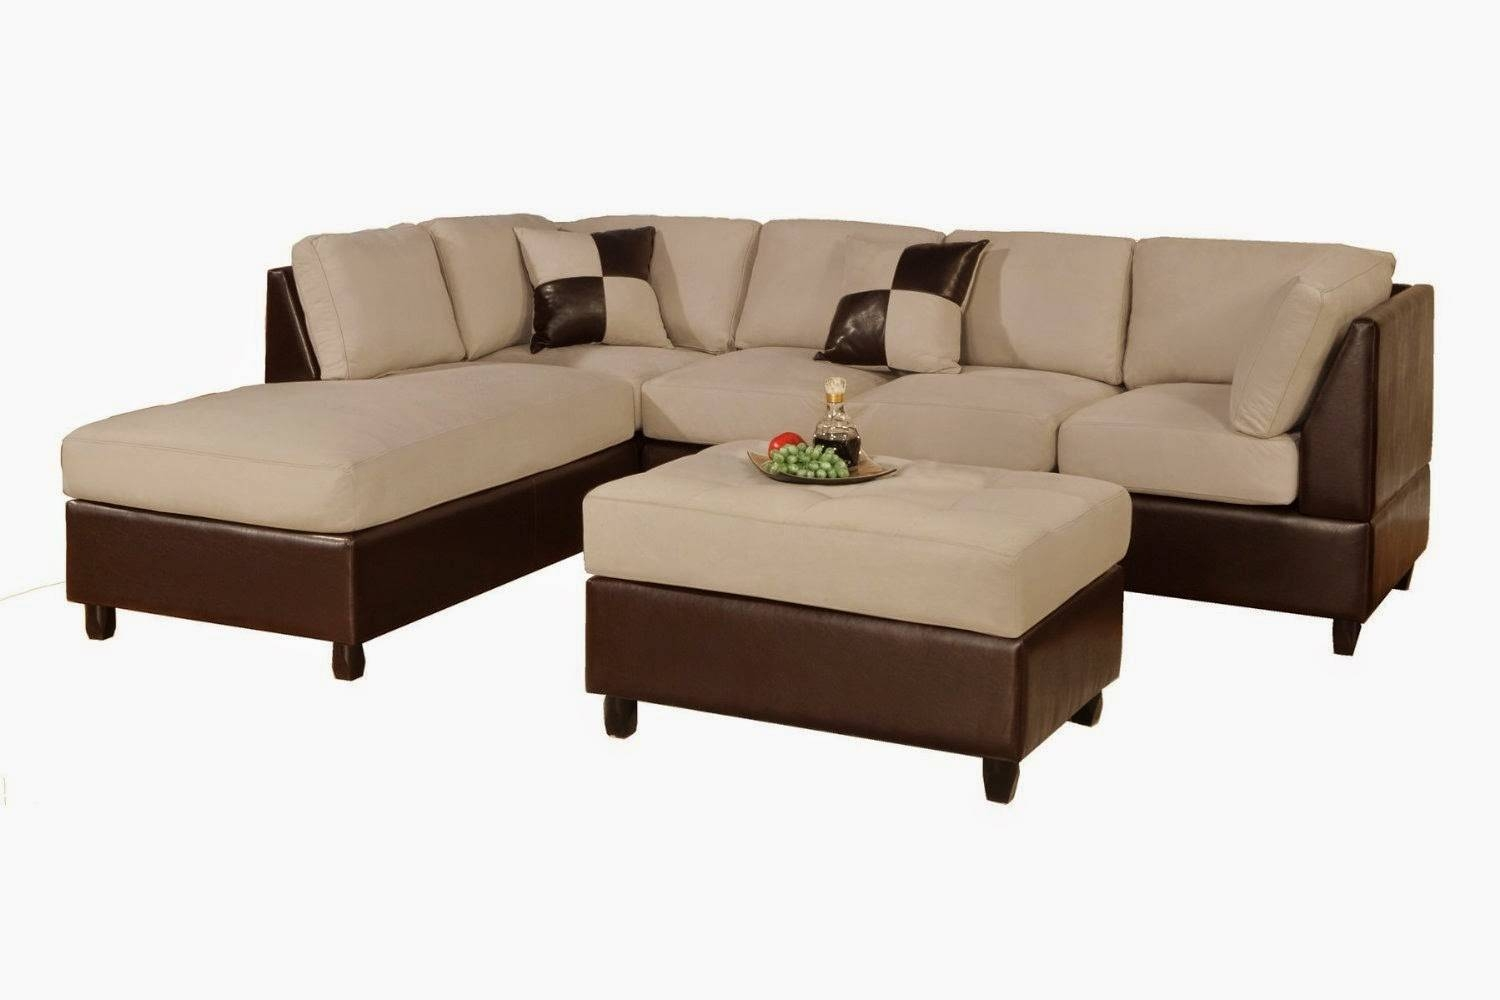 Furniture. L Shaped Sofa Bed With Brown Cushion And Round Table On in Small L-Shaped Sofas (Image 5 of 15)